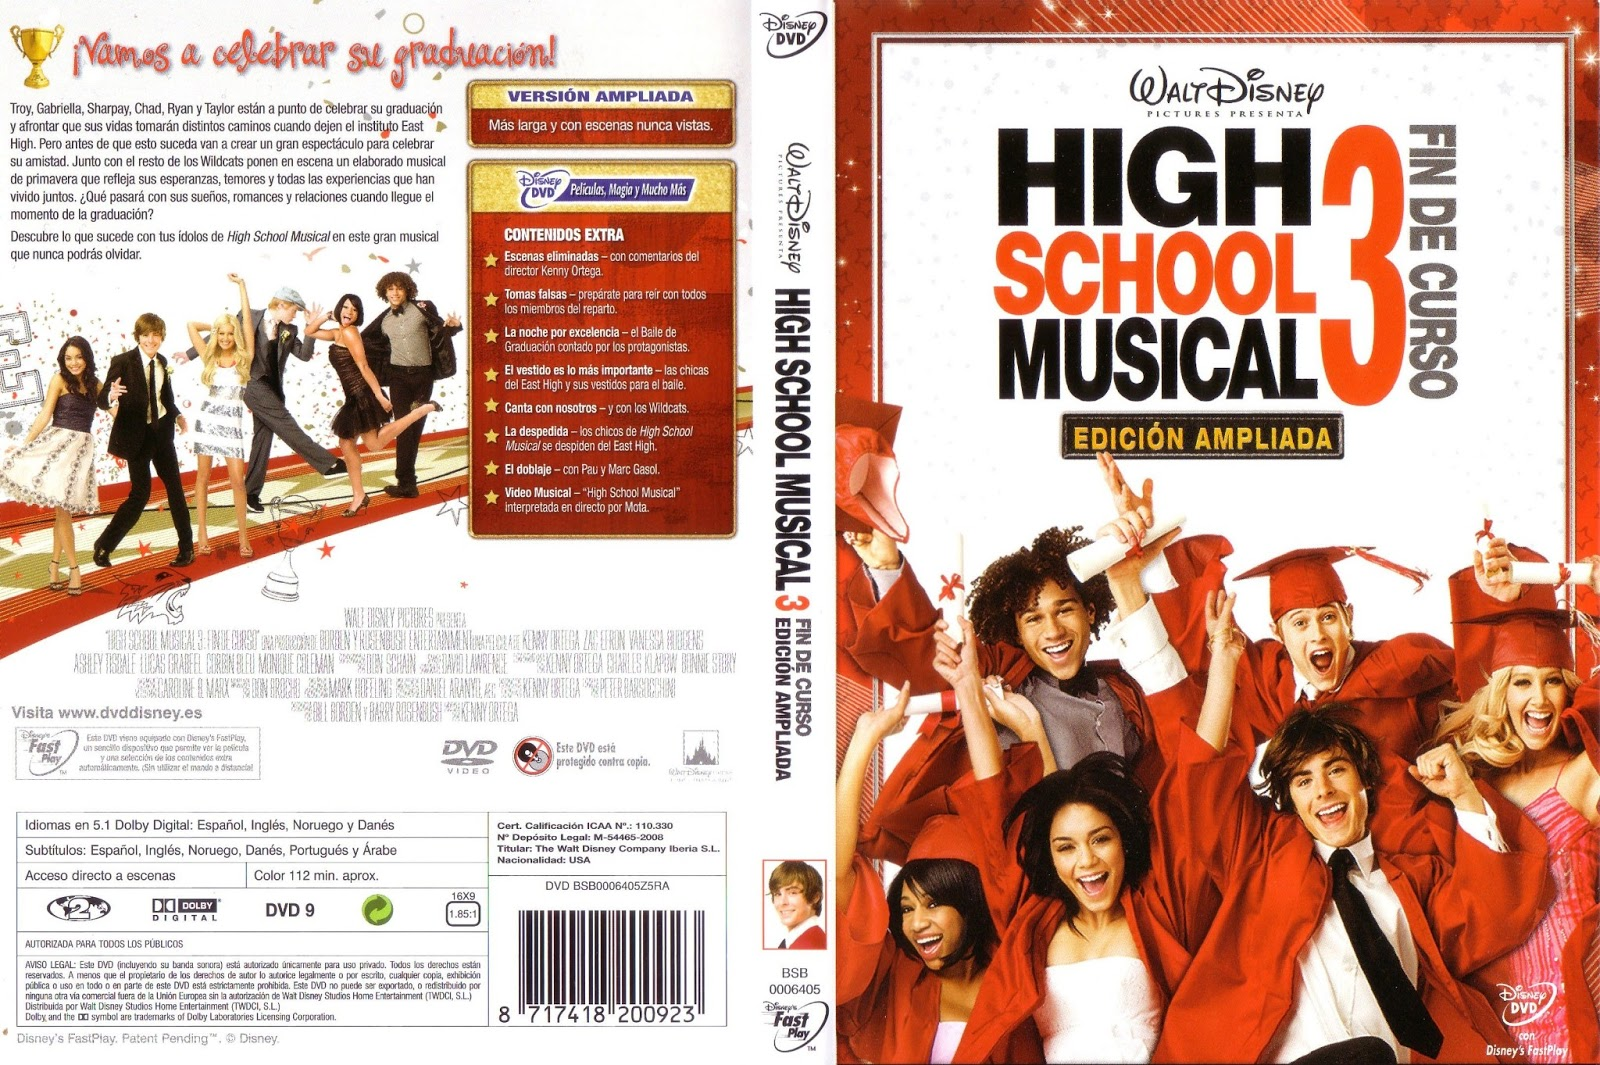 high school musical dvd en espanol: